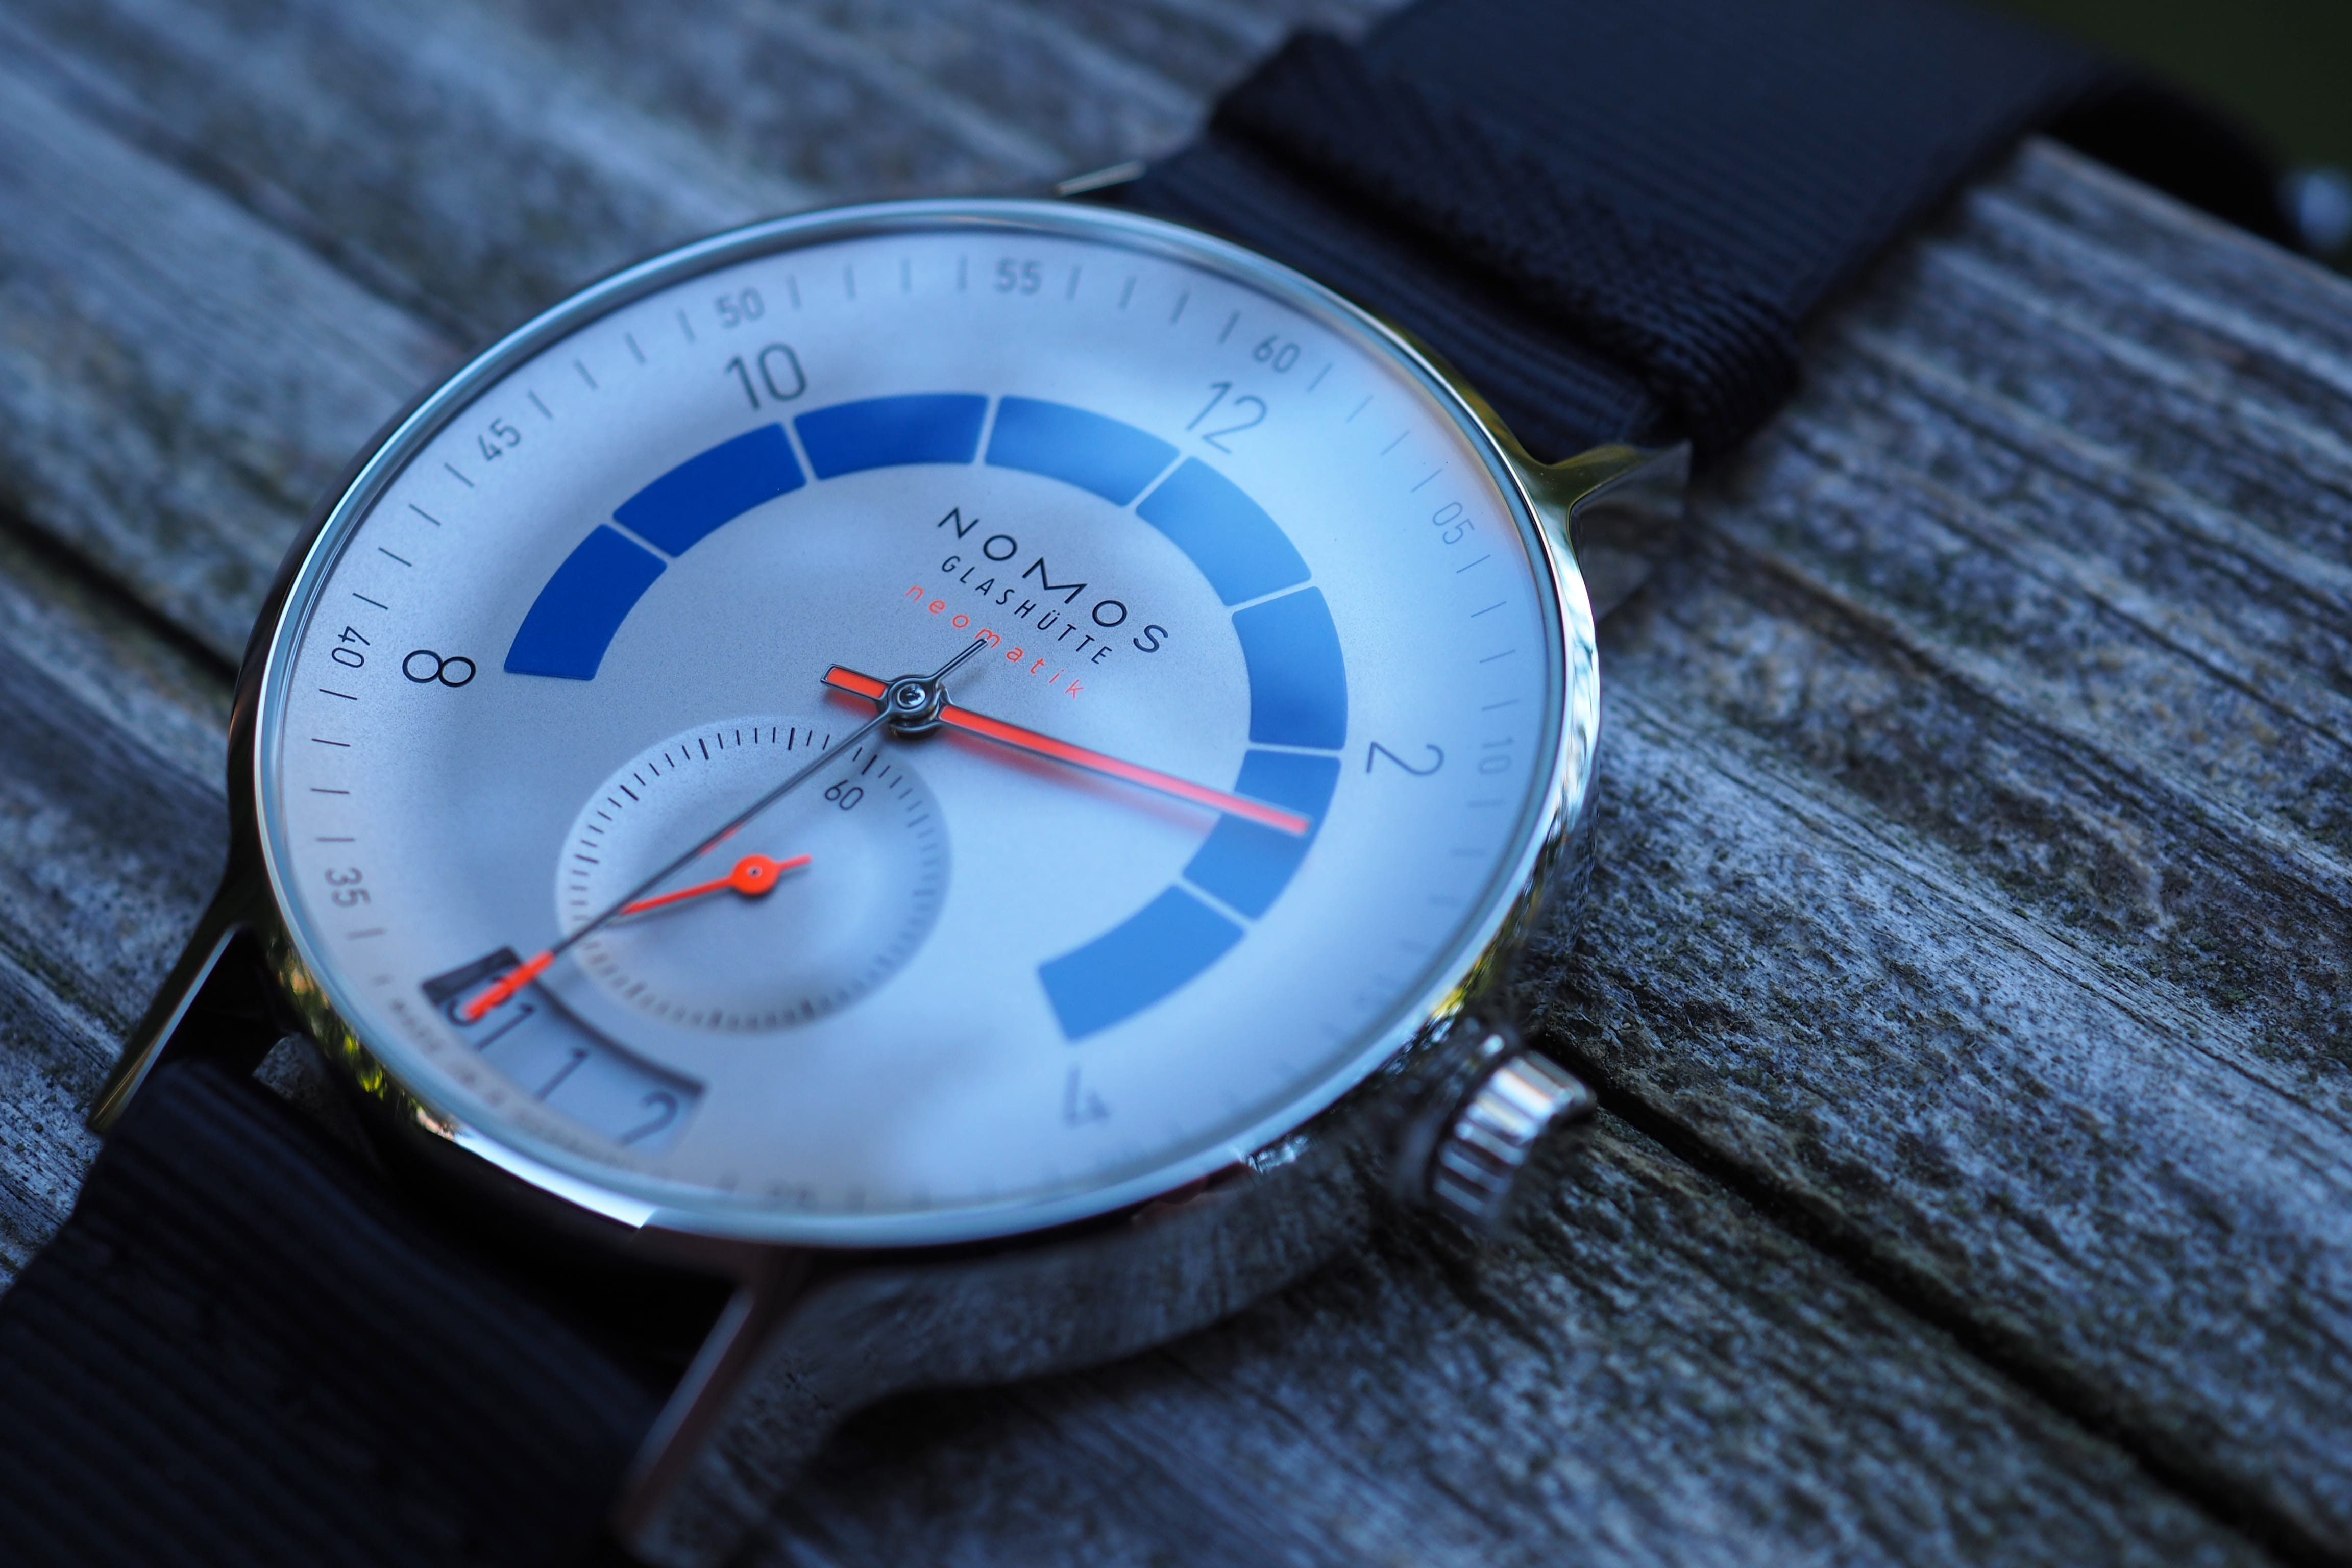 Angled photo of full watch